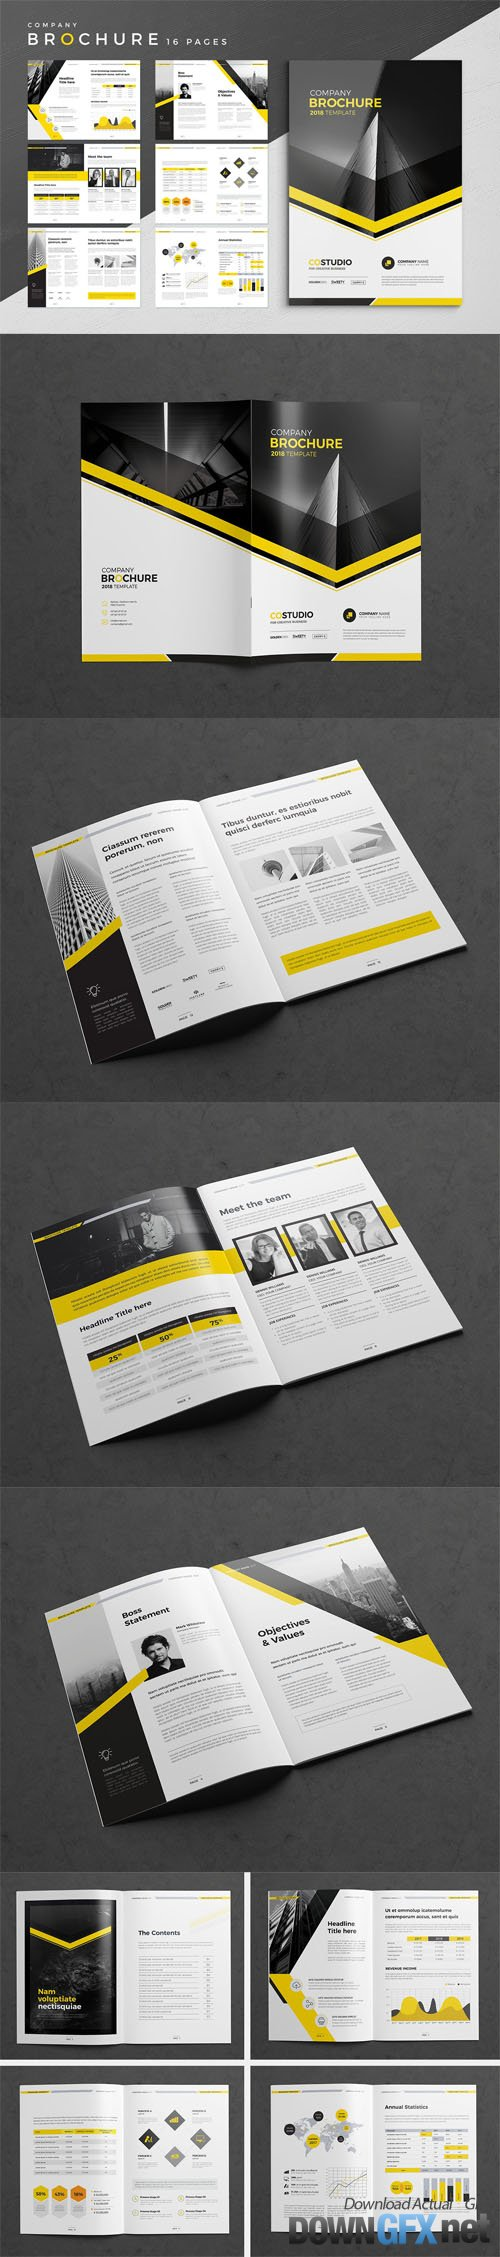 Company Brochure 16 Pages